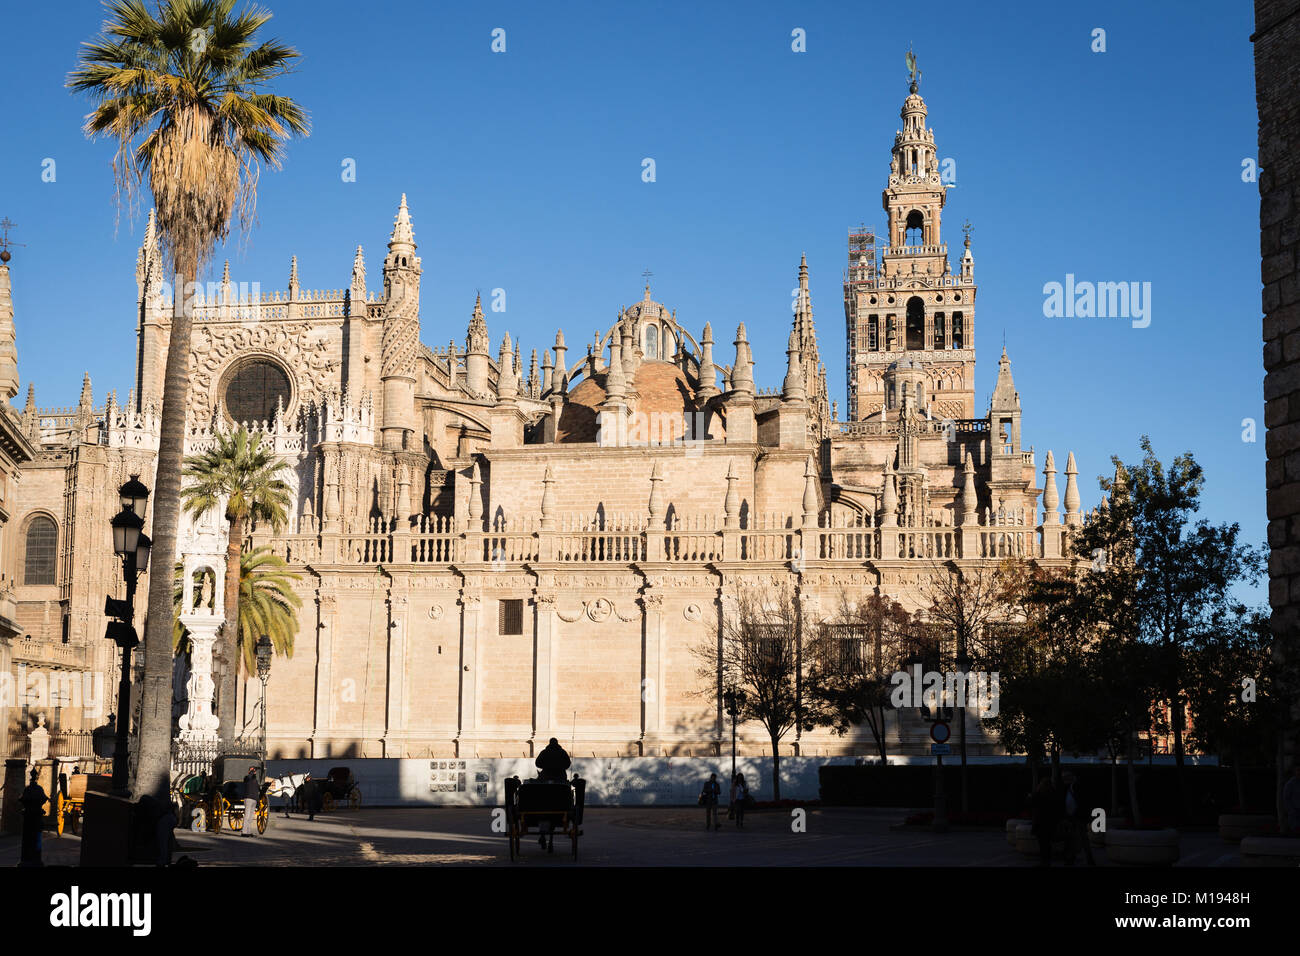 Cathedral and La Giralda bell tower, Seville, Andalusia, Spain. - Stock Image